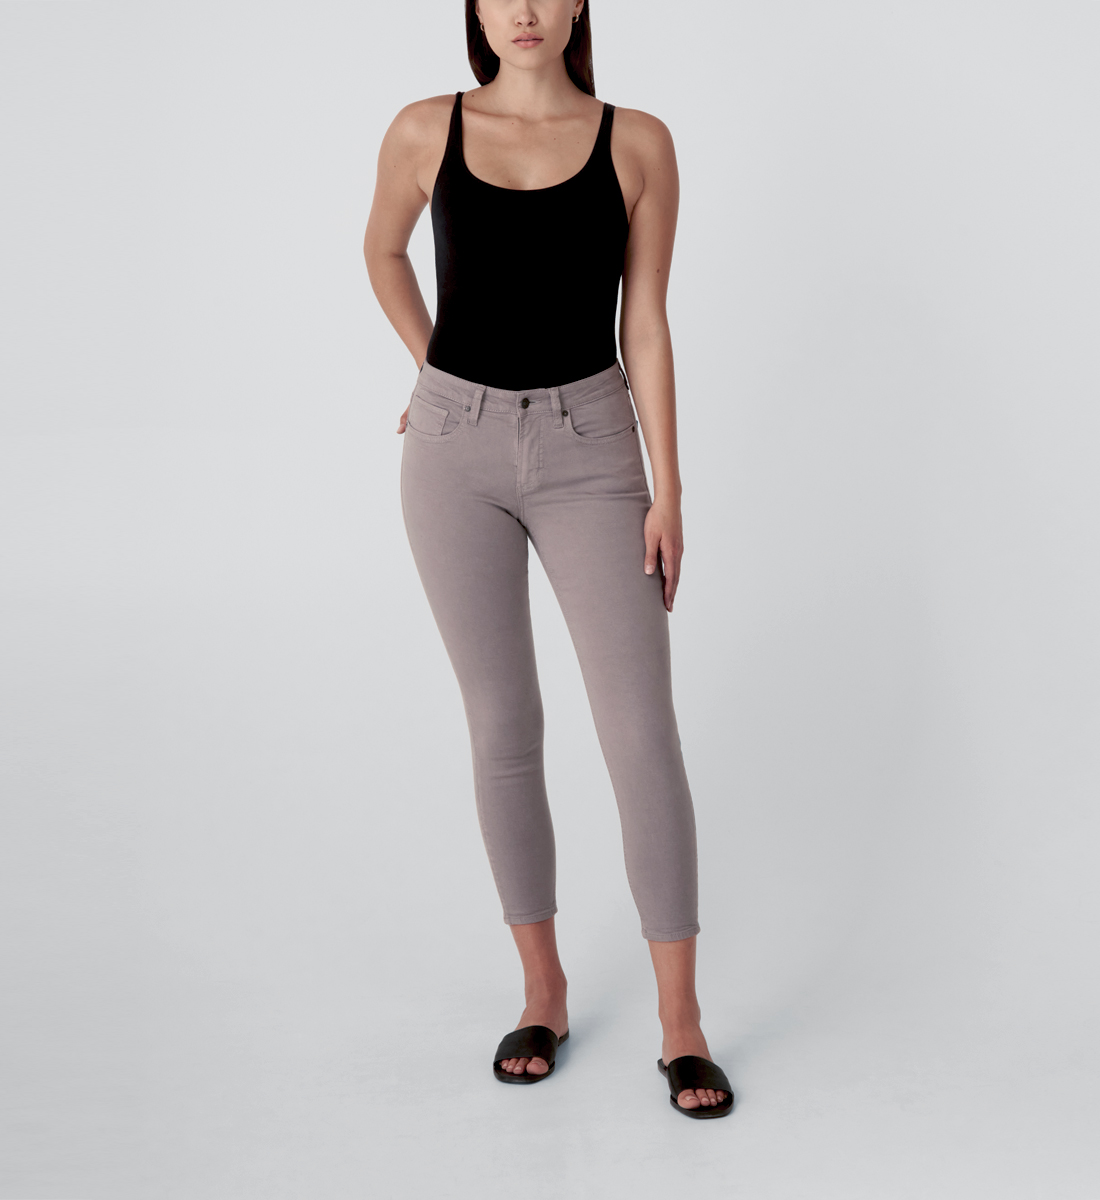 Most Wanted Mid Rise Skinny Jeans,Grey Front